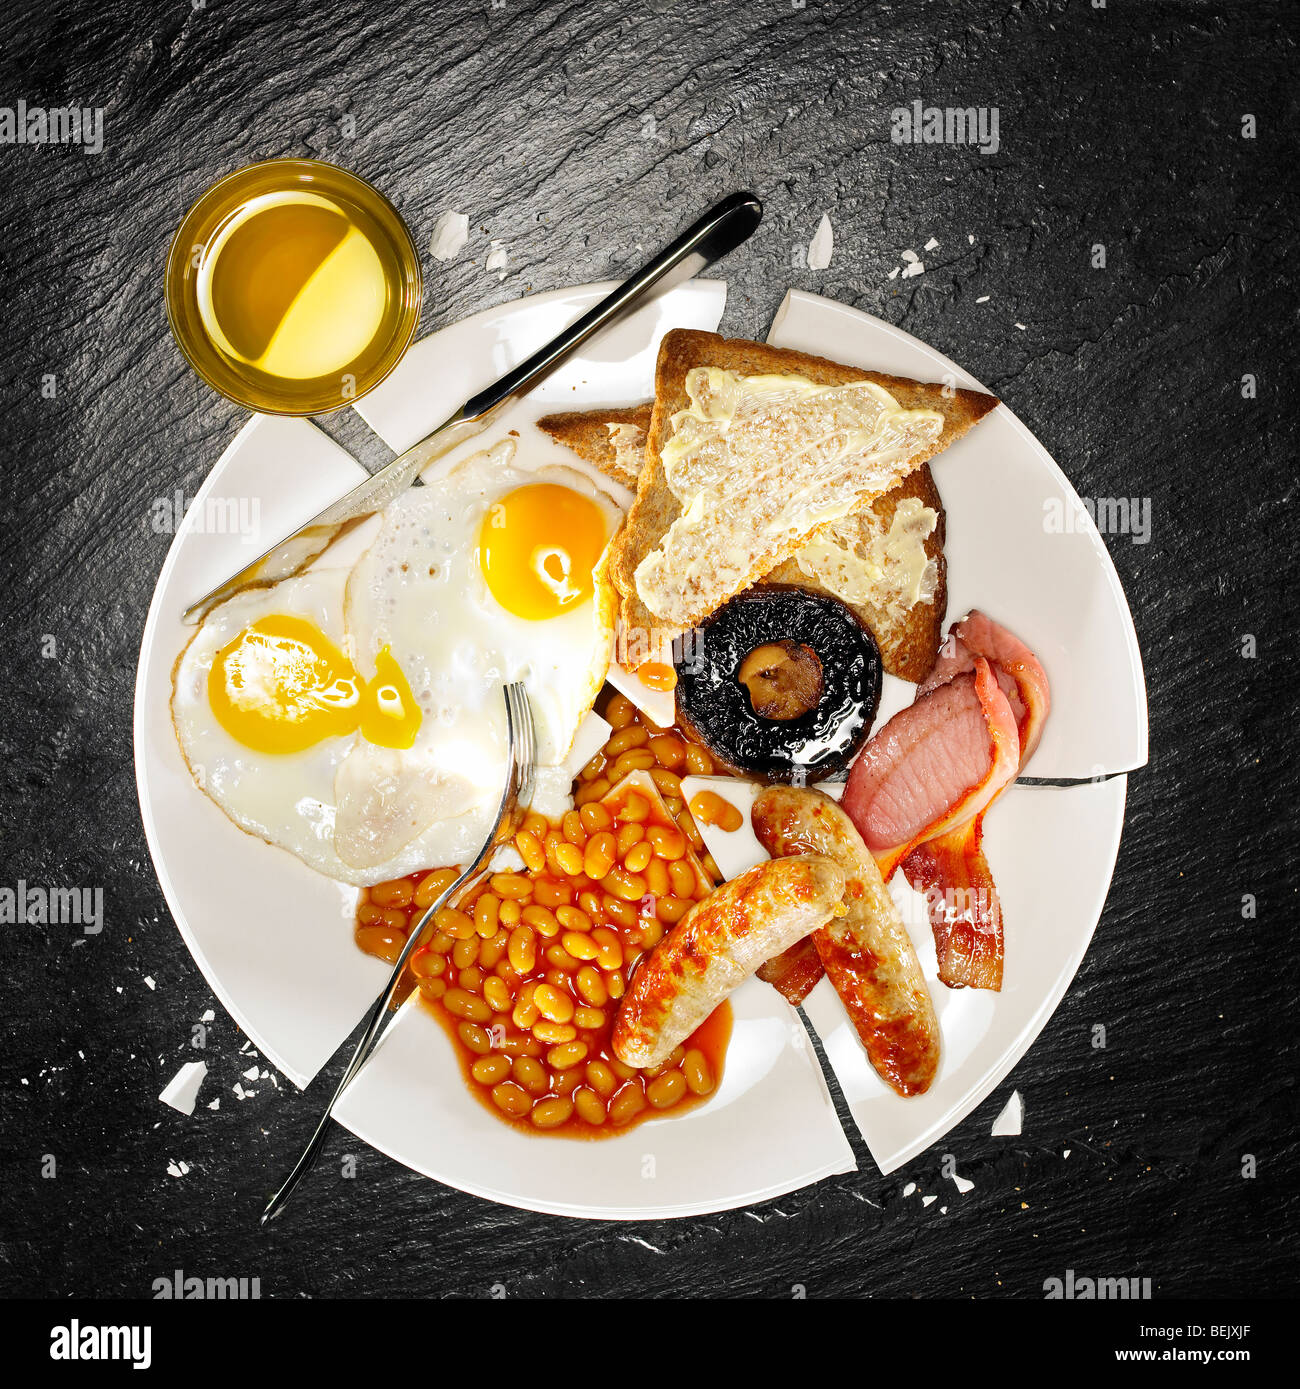 A full breakfast containing bacon, eggs, sausage, baked beans, mushroom and toast Stock Photo